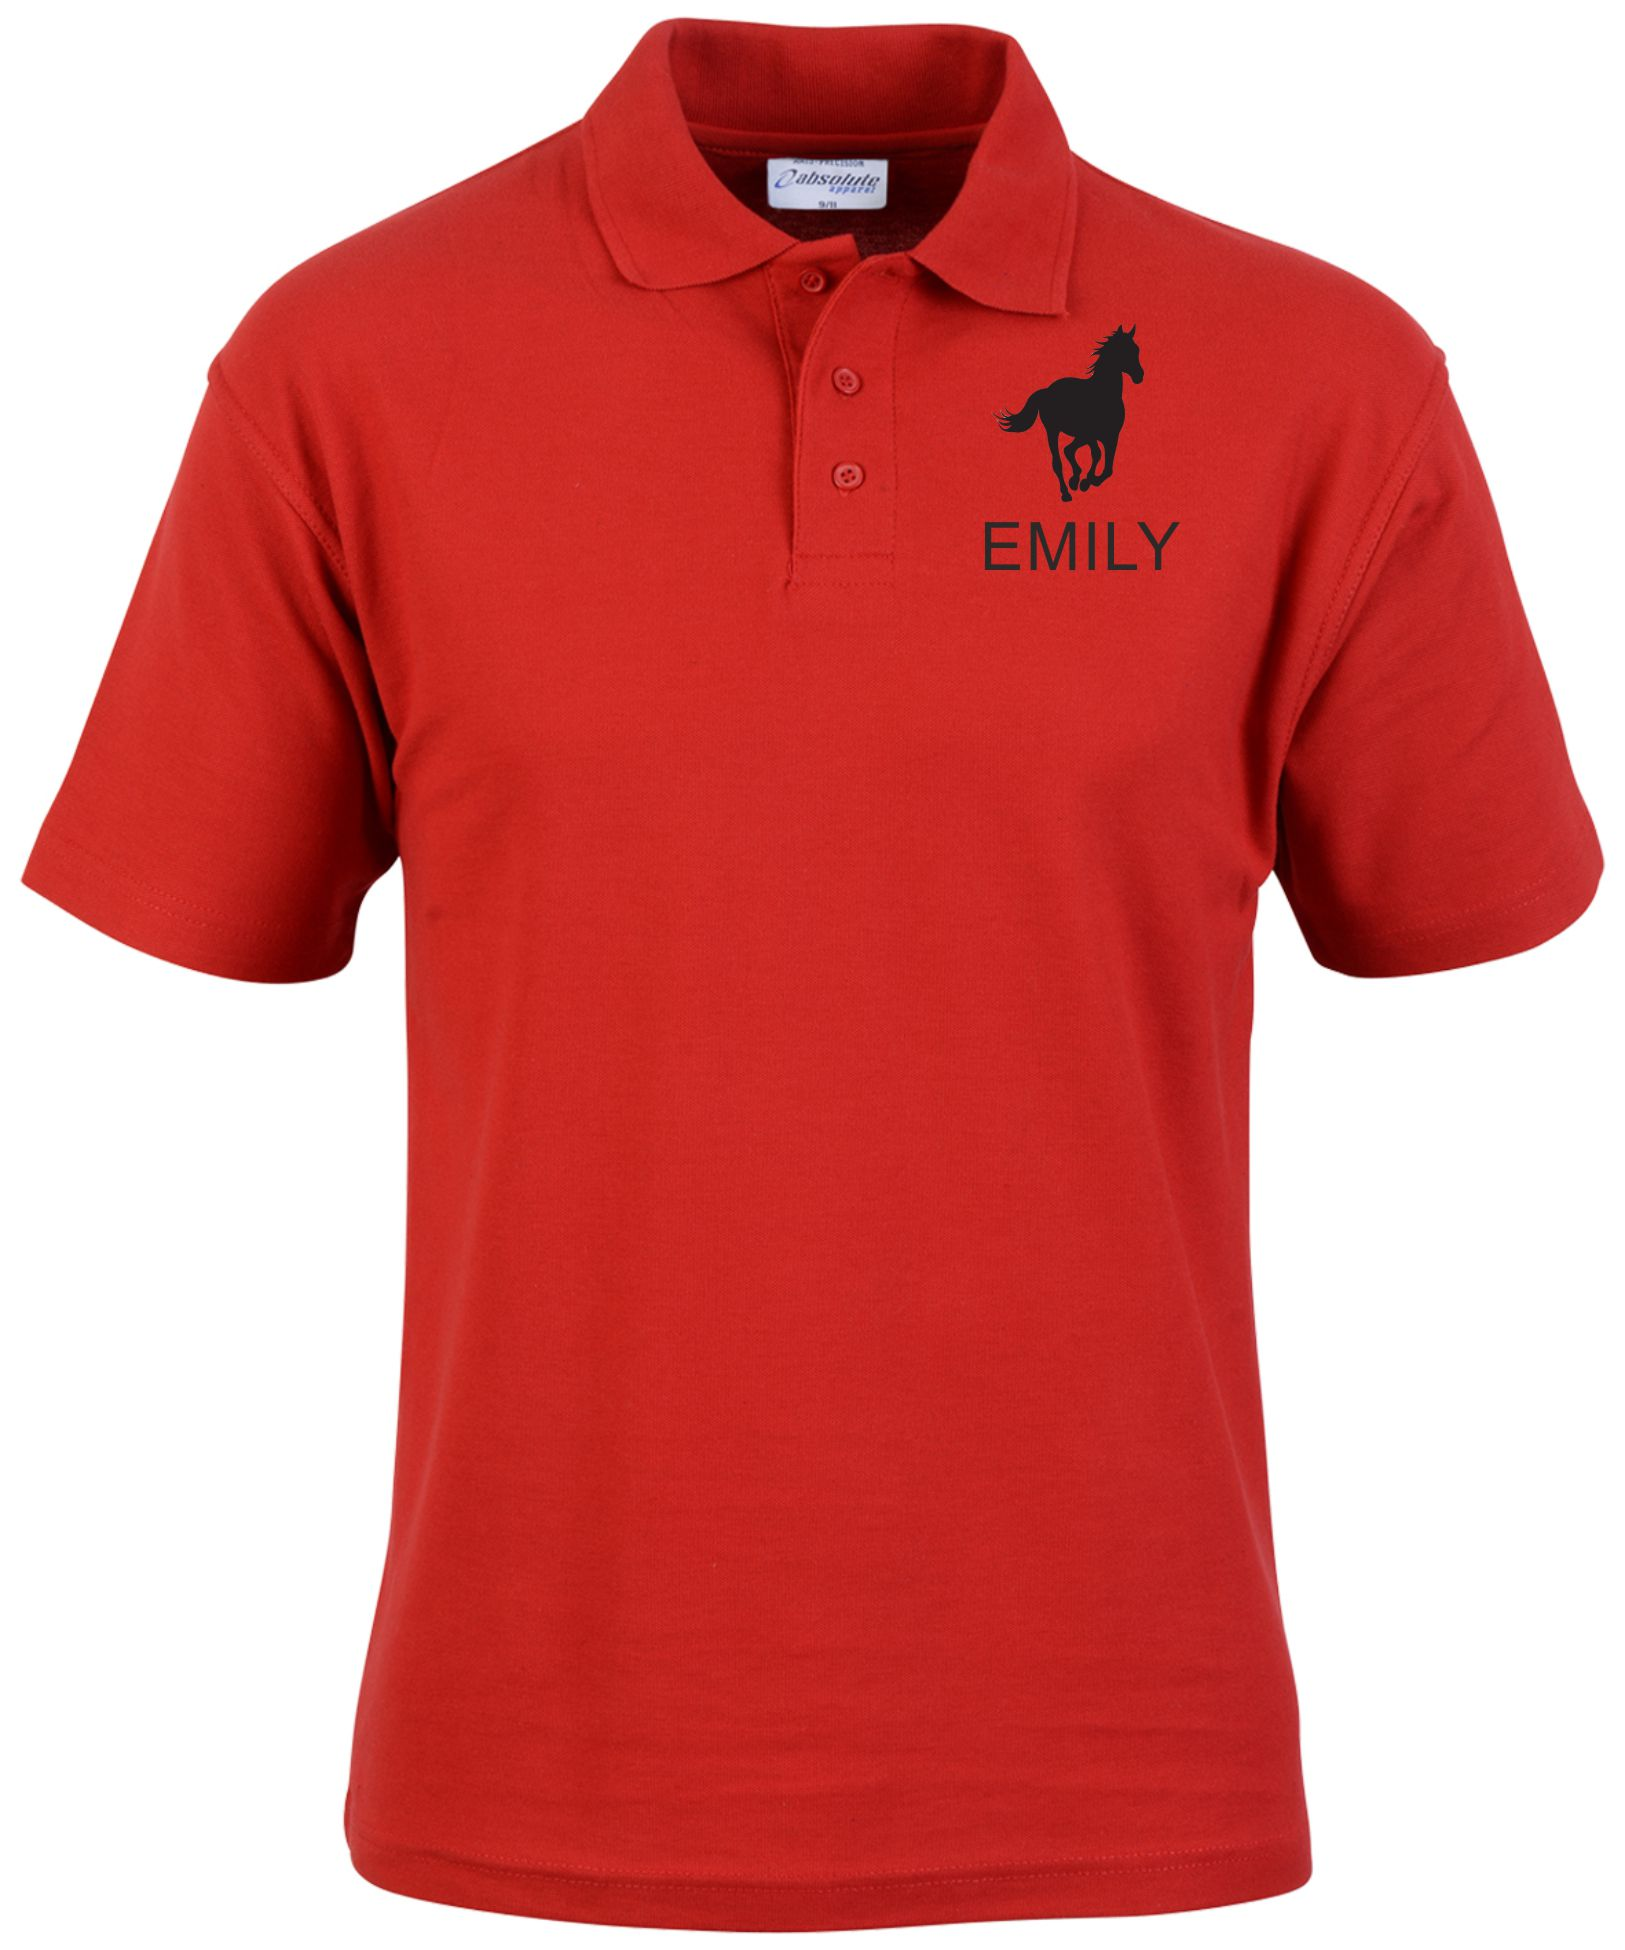 Children's Polo Shirt